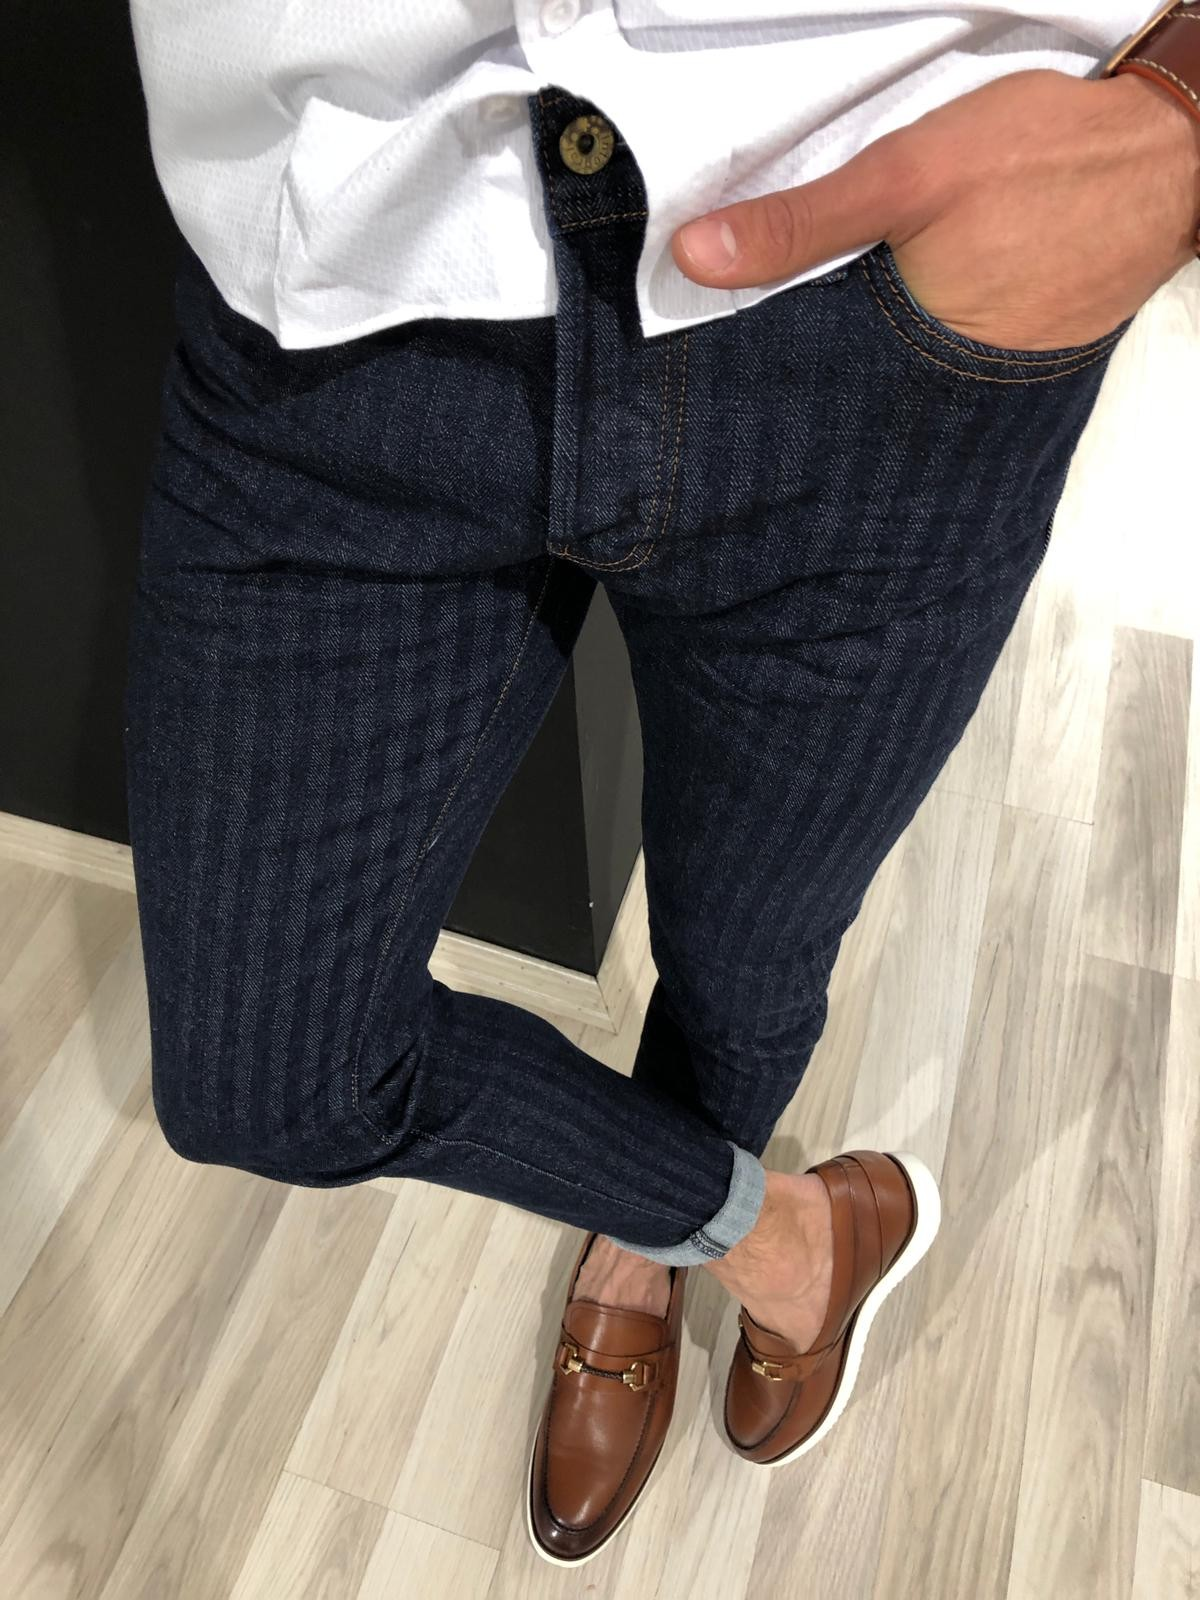 Navy Blue Striped Jeans by Gentwith.com with Free Shipping